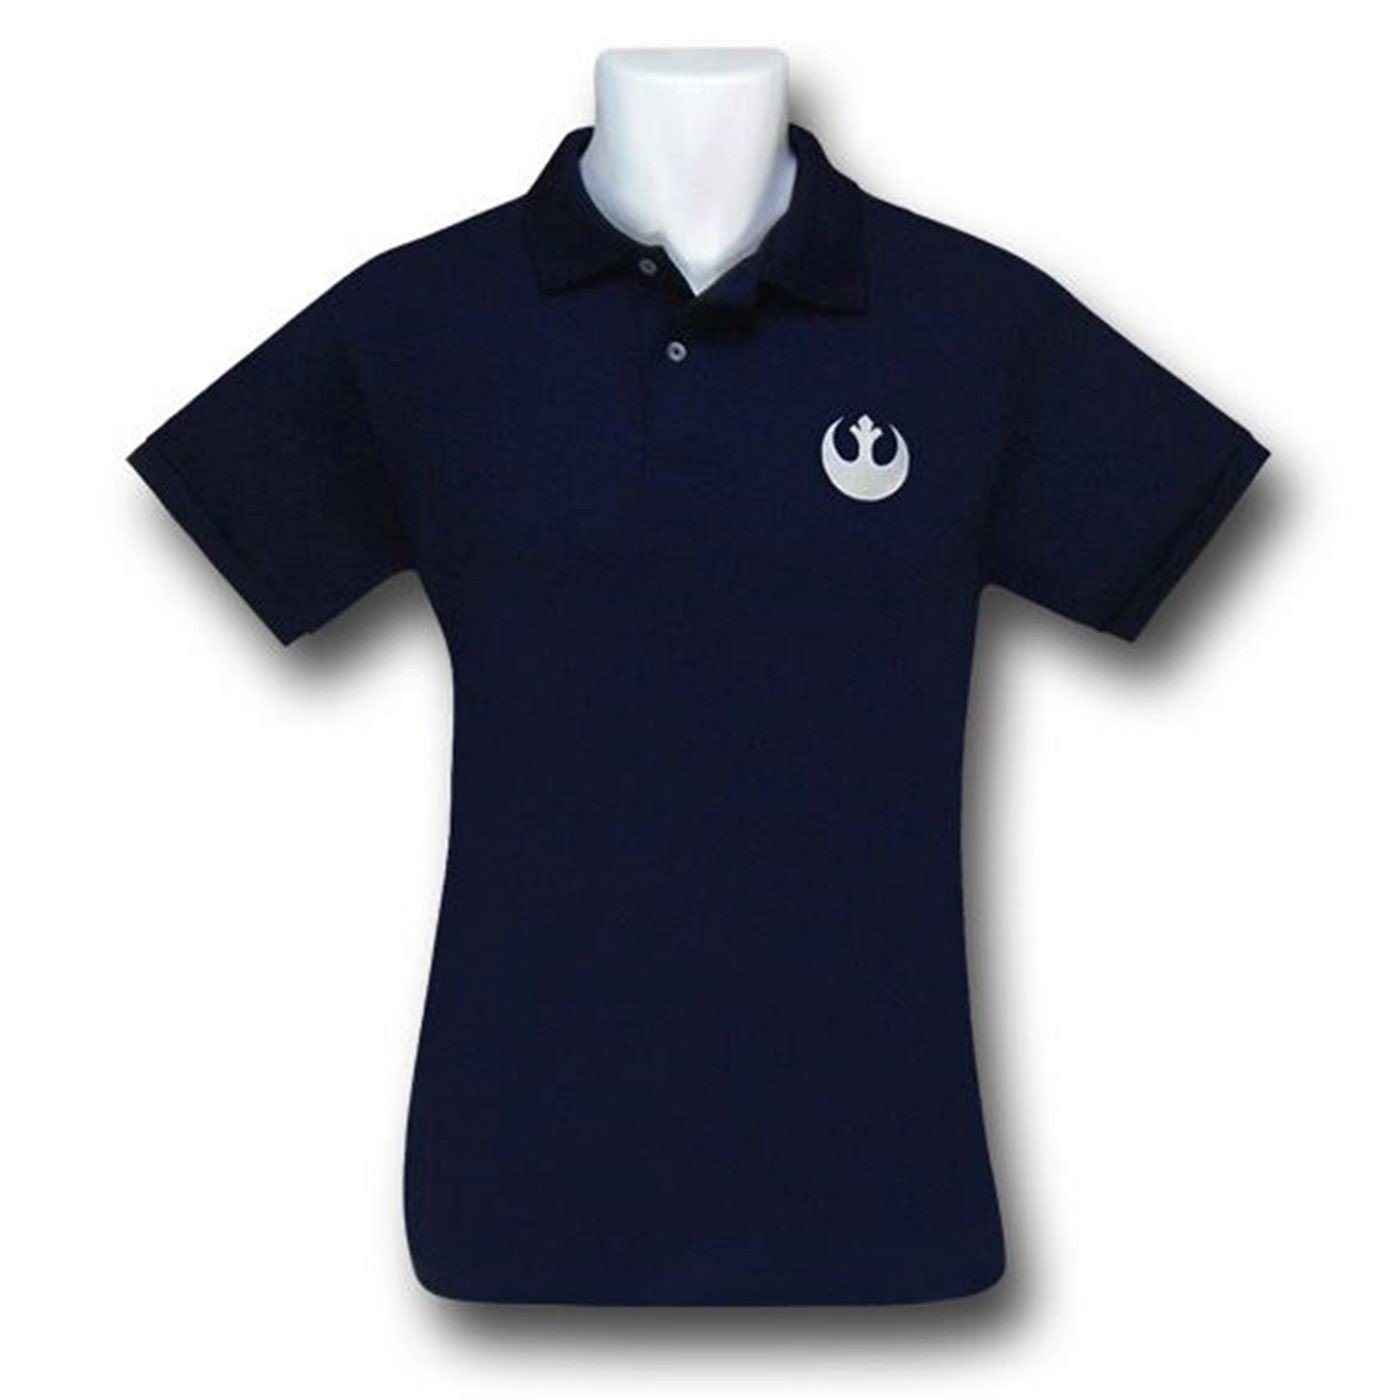 Star Wars Rebel Symbol Navy Polo Shirt